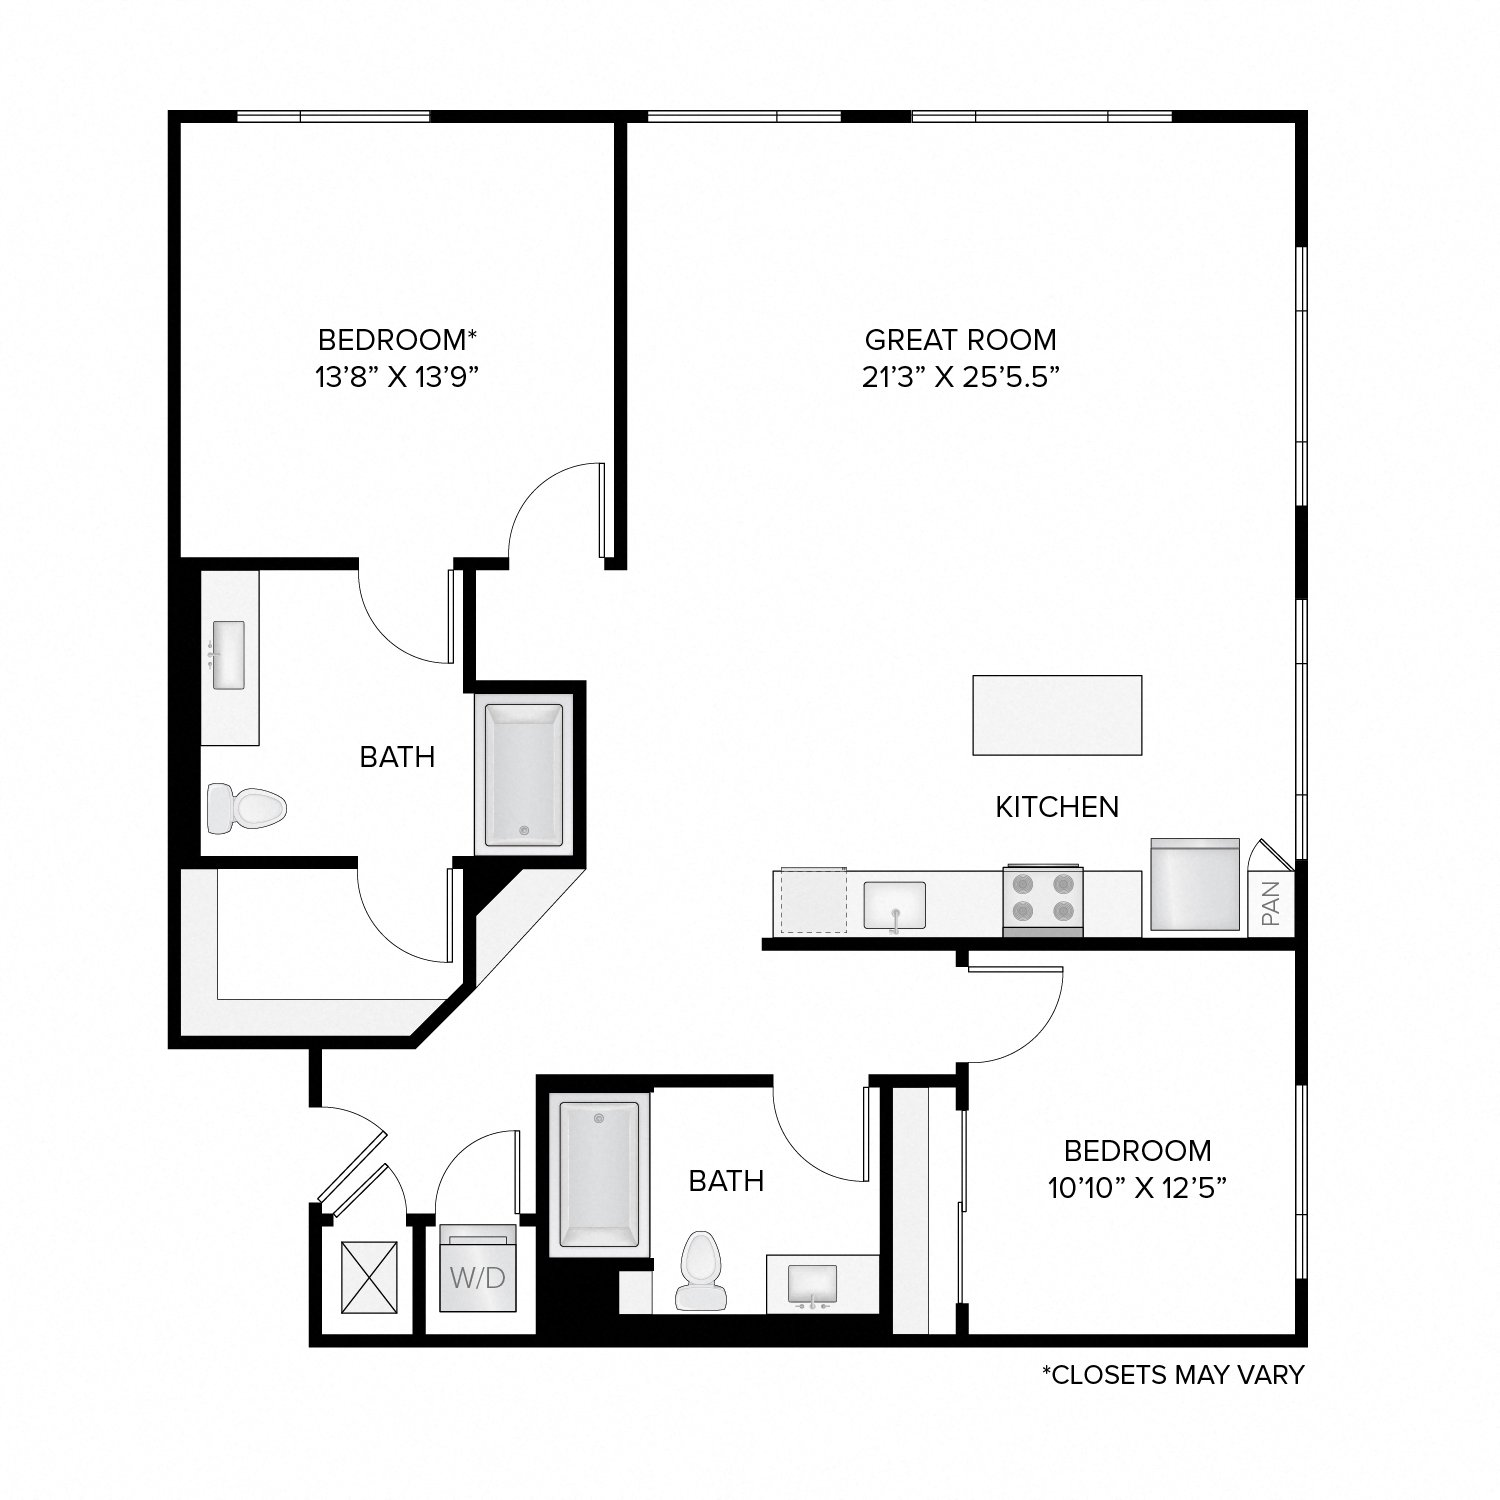 Diagram of the Washington floor plan. Two bedrooms, two bathrooms, an open kitchen, dining, and living area, and a washer dryer.